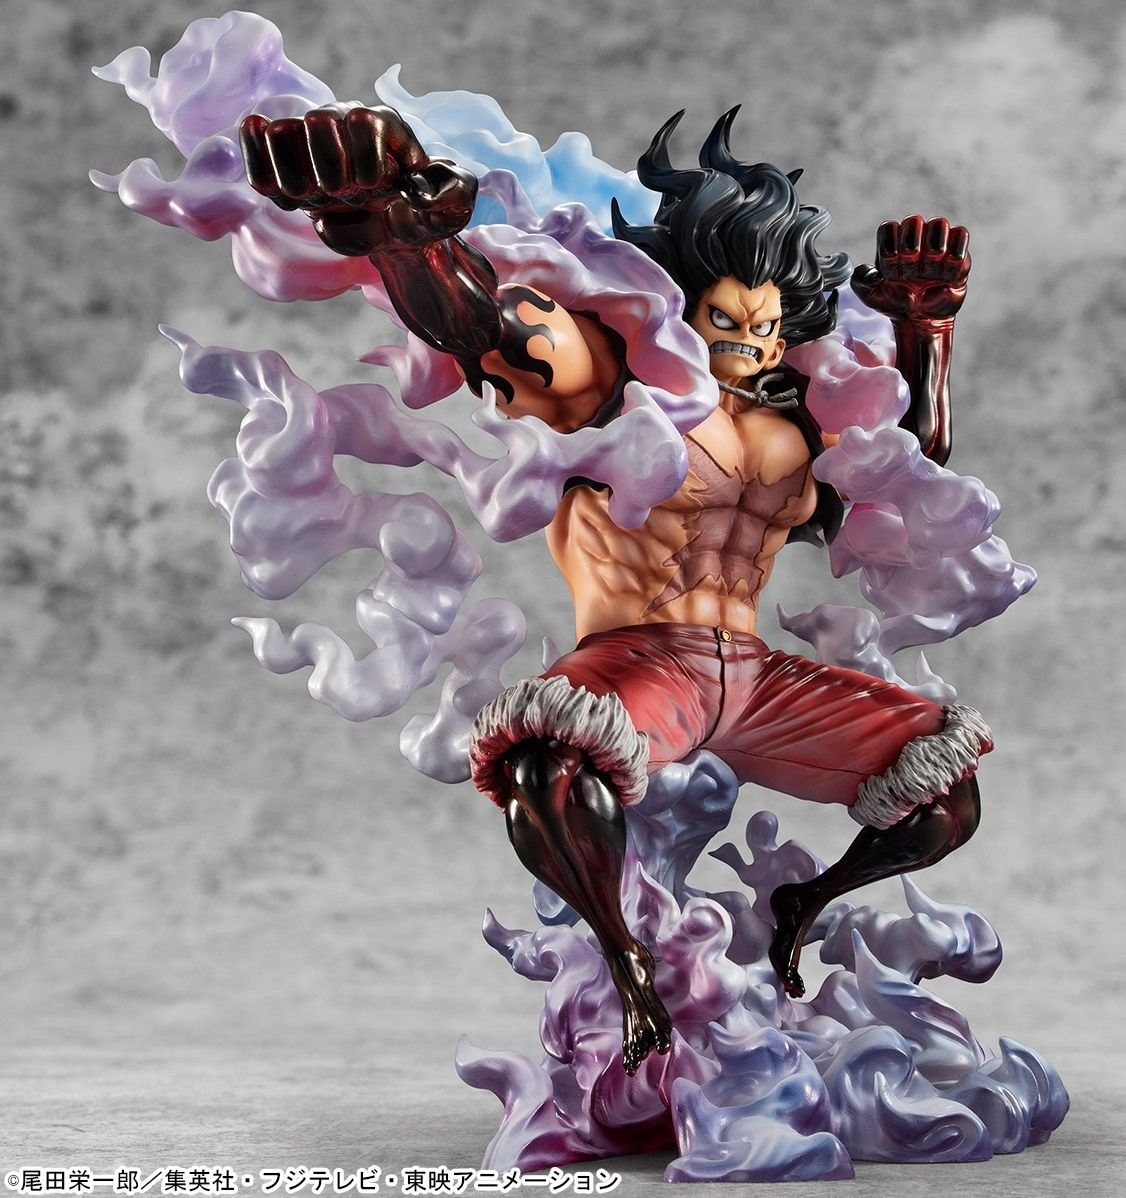 One Piece Figure, Luffy Gear Fourth Snakeman | Anime Merchandise Monday (February 2019) | MANGA.TOKYO (C)尾田栄一郎/集英社・フジテレビ・東映アニメーション